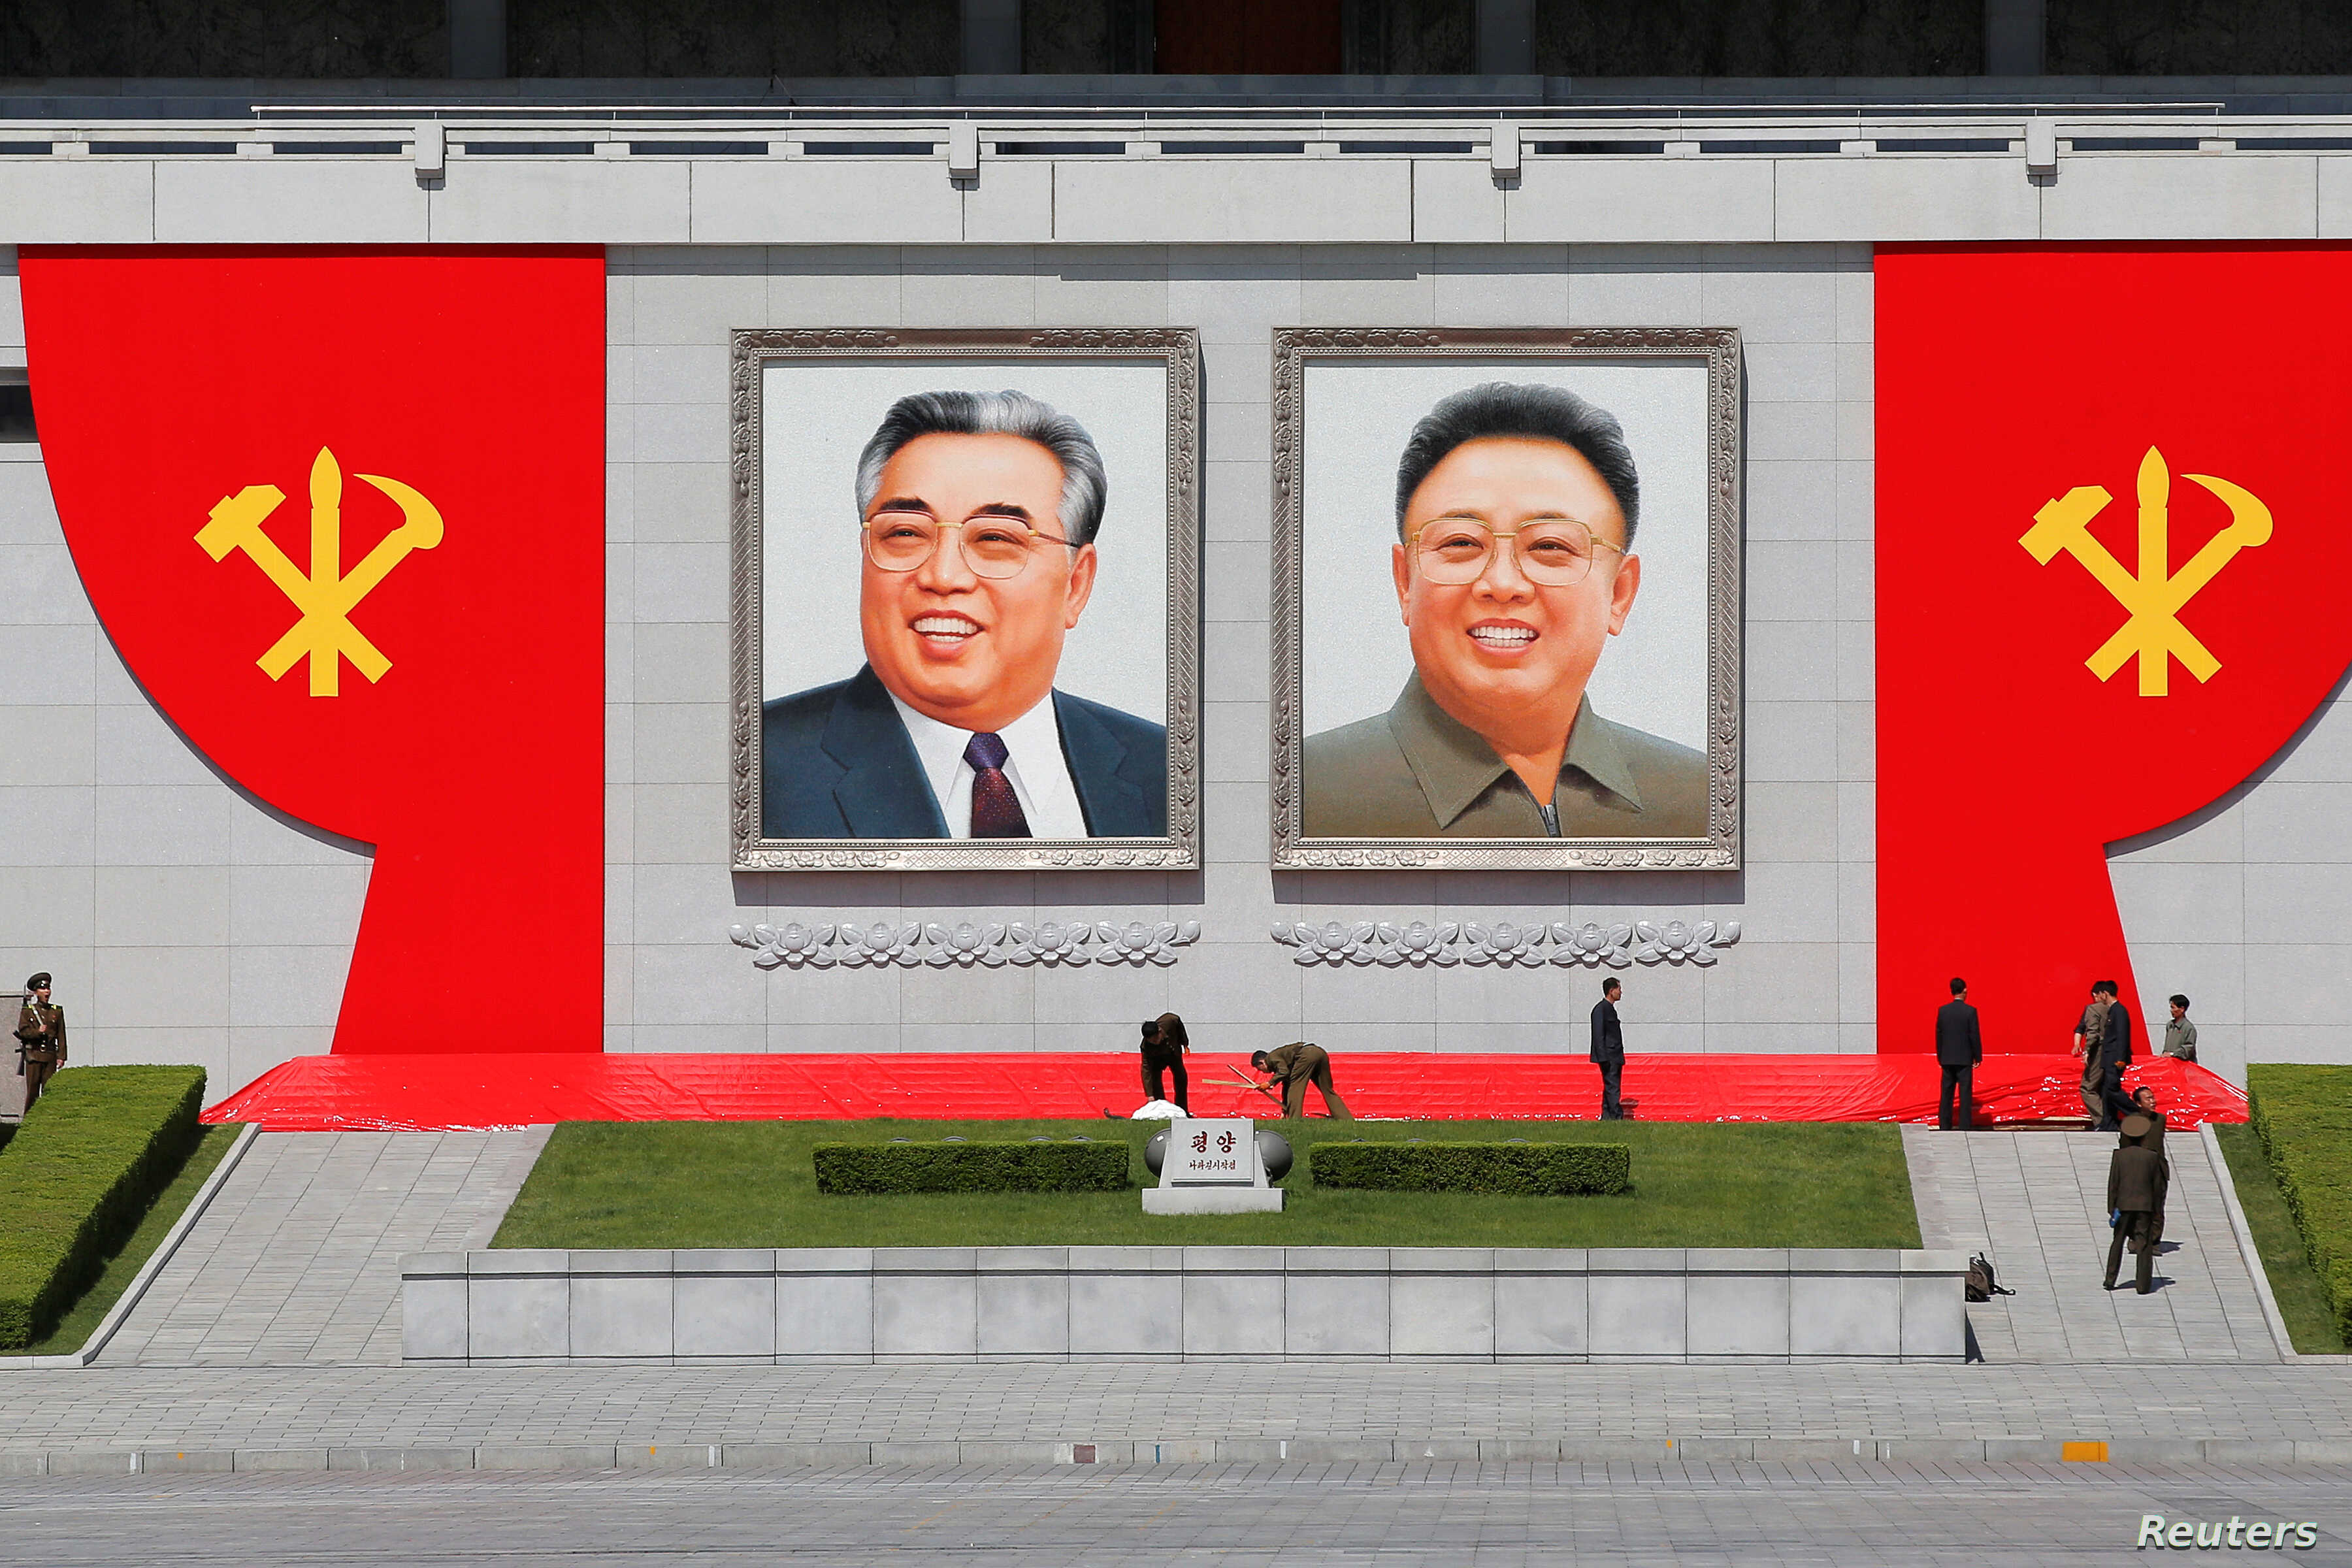 People work around pictures of former North Korean leaders Kim Il Sung, left, and Kim Jong Il at the main Kim Il Sung square in central Pyongyang, North Korea, May 7, 2016.